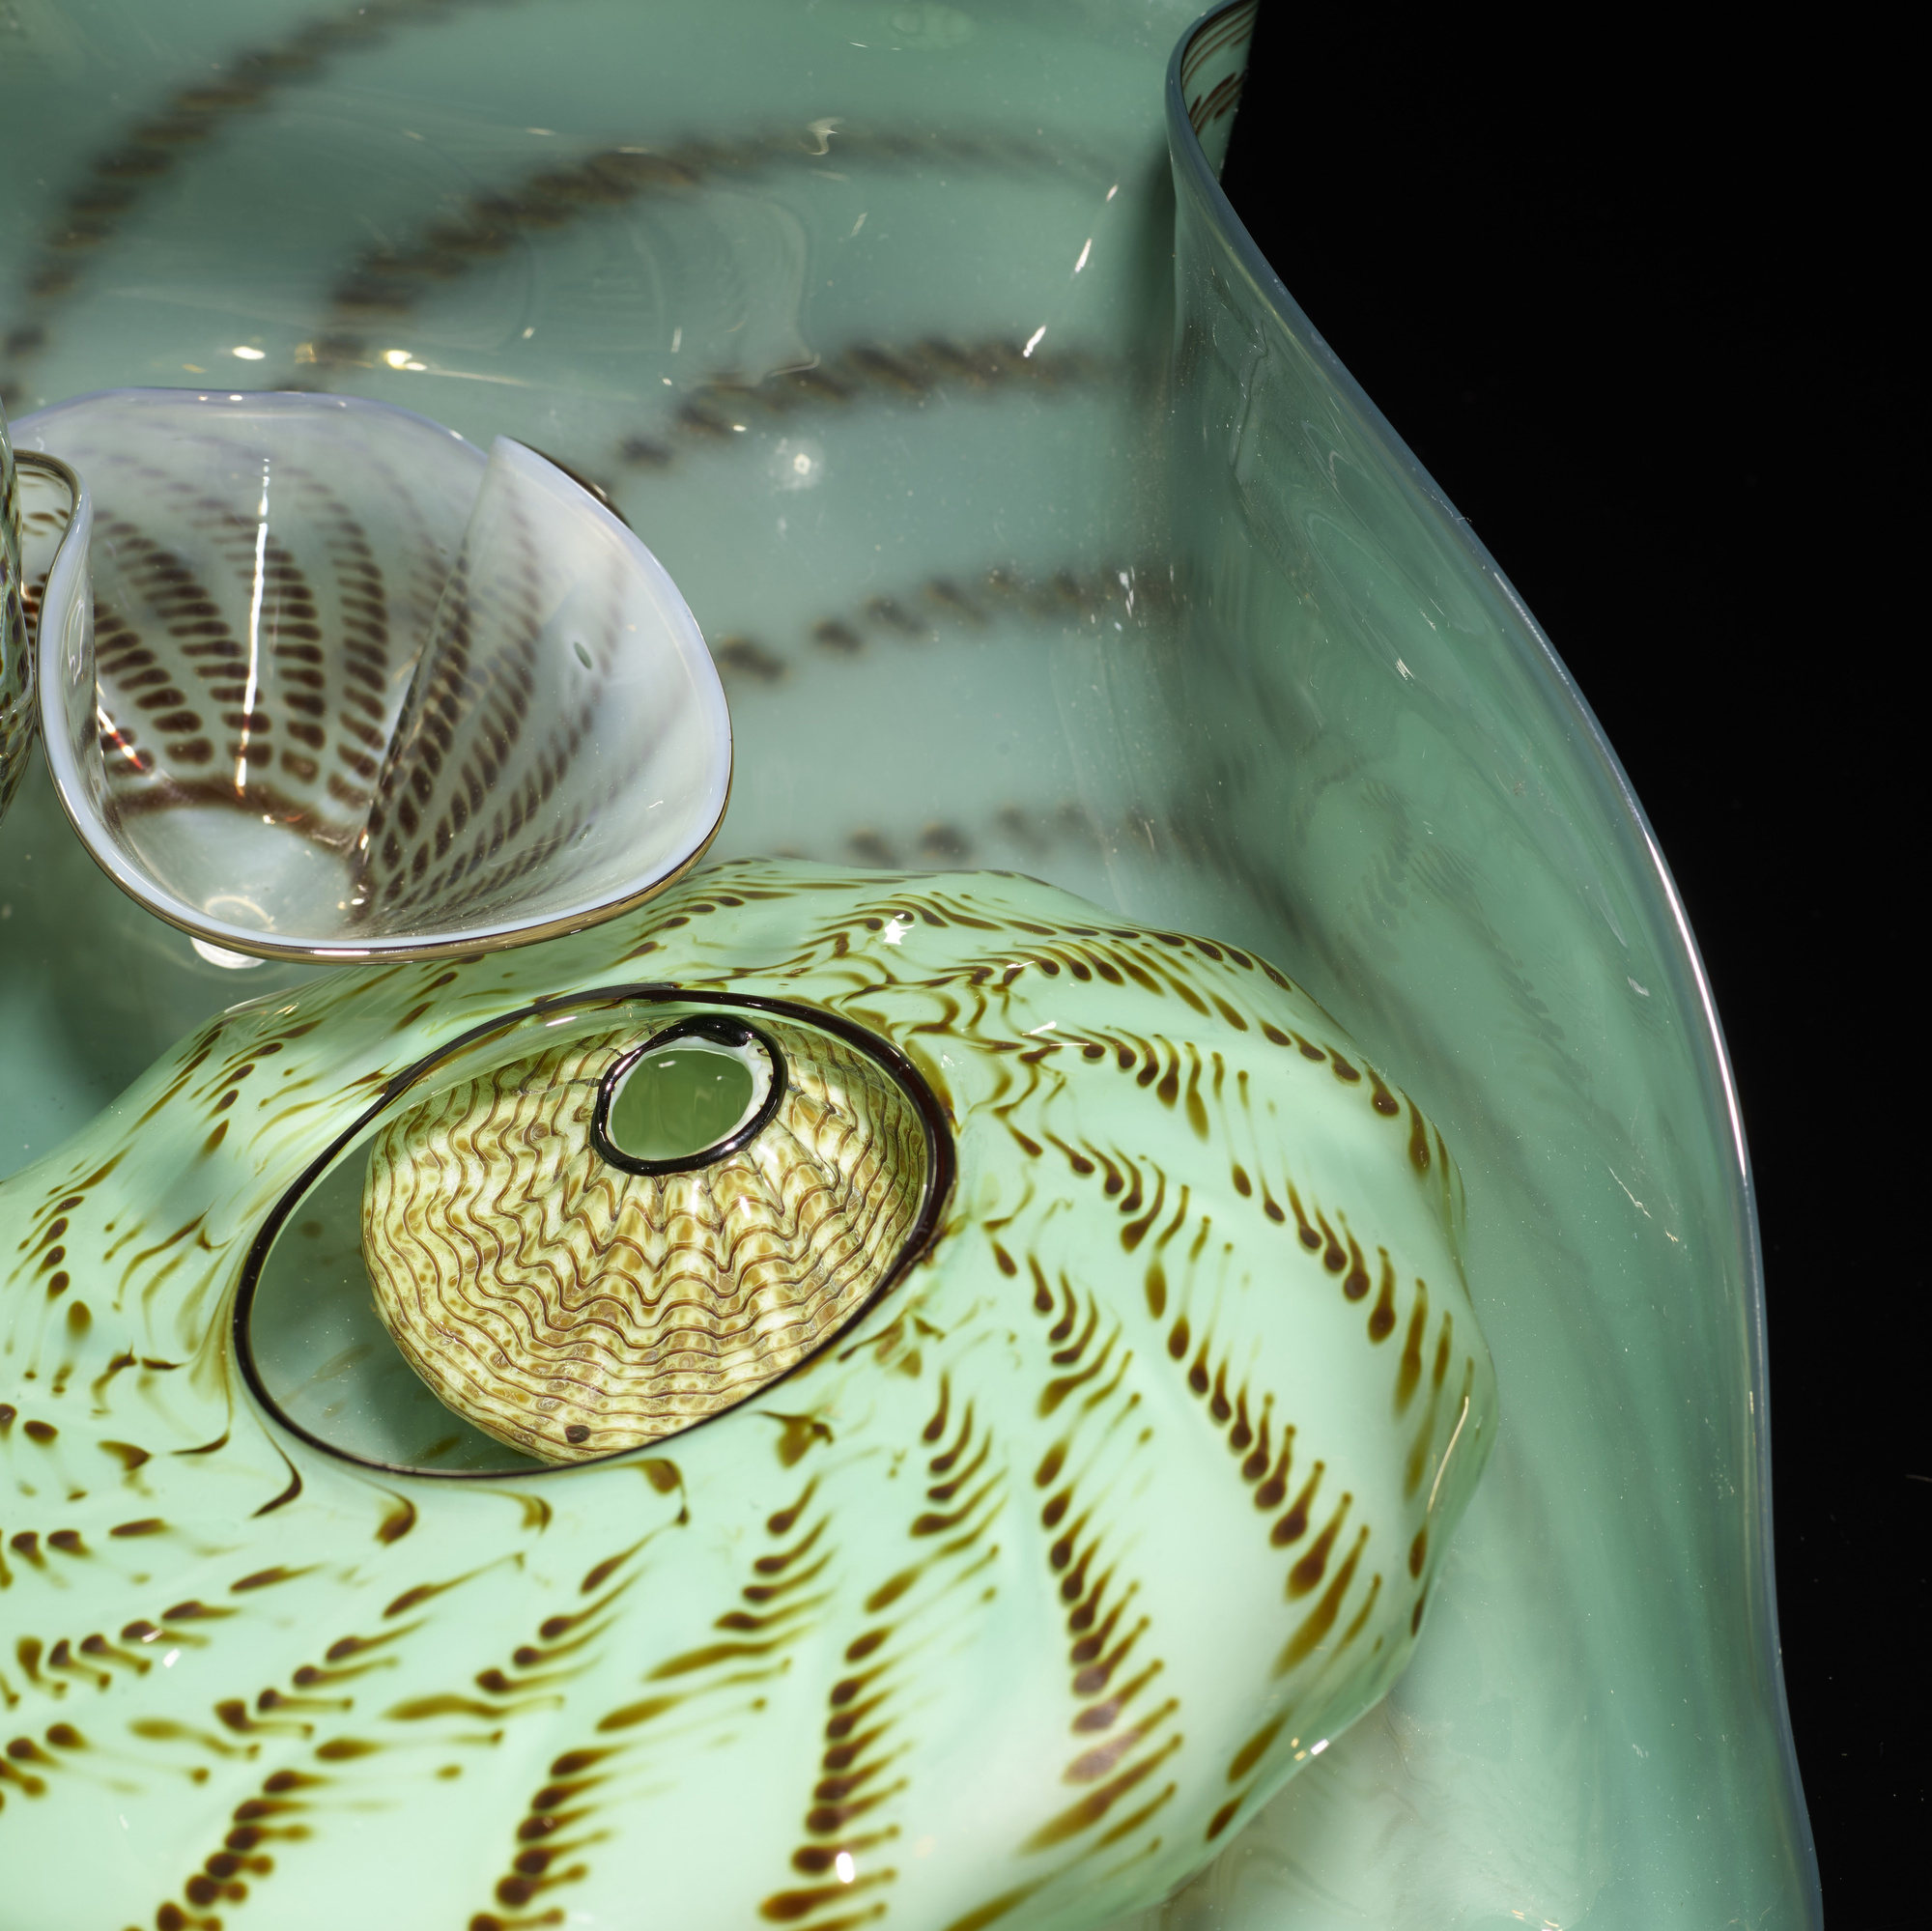 105: Dale Chihuly / Seaform Set (3 of 4)